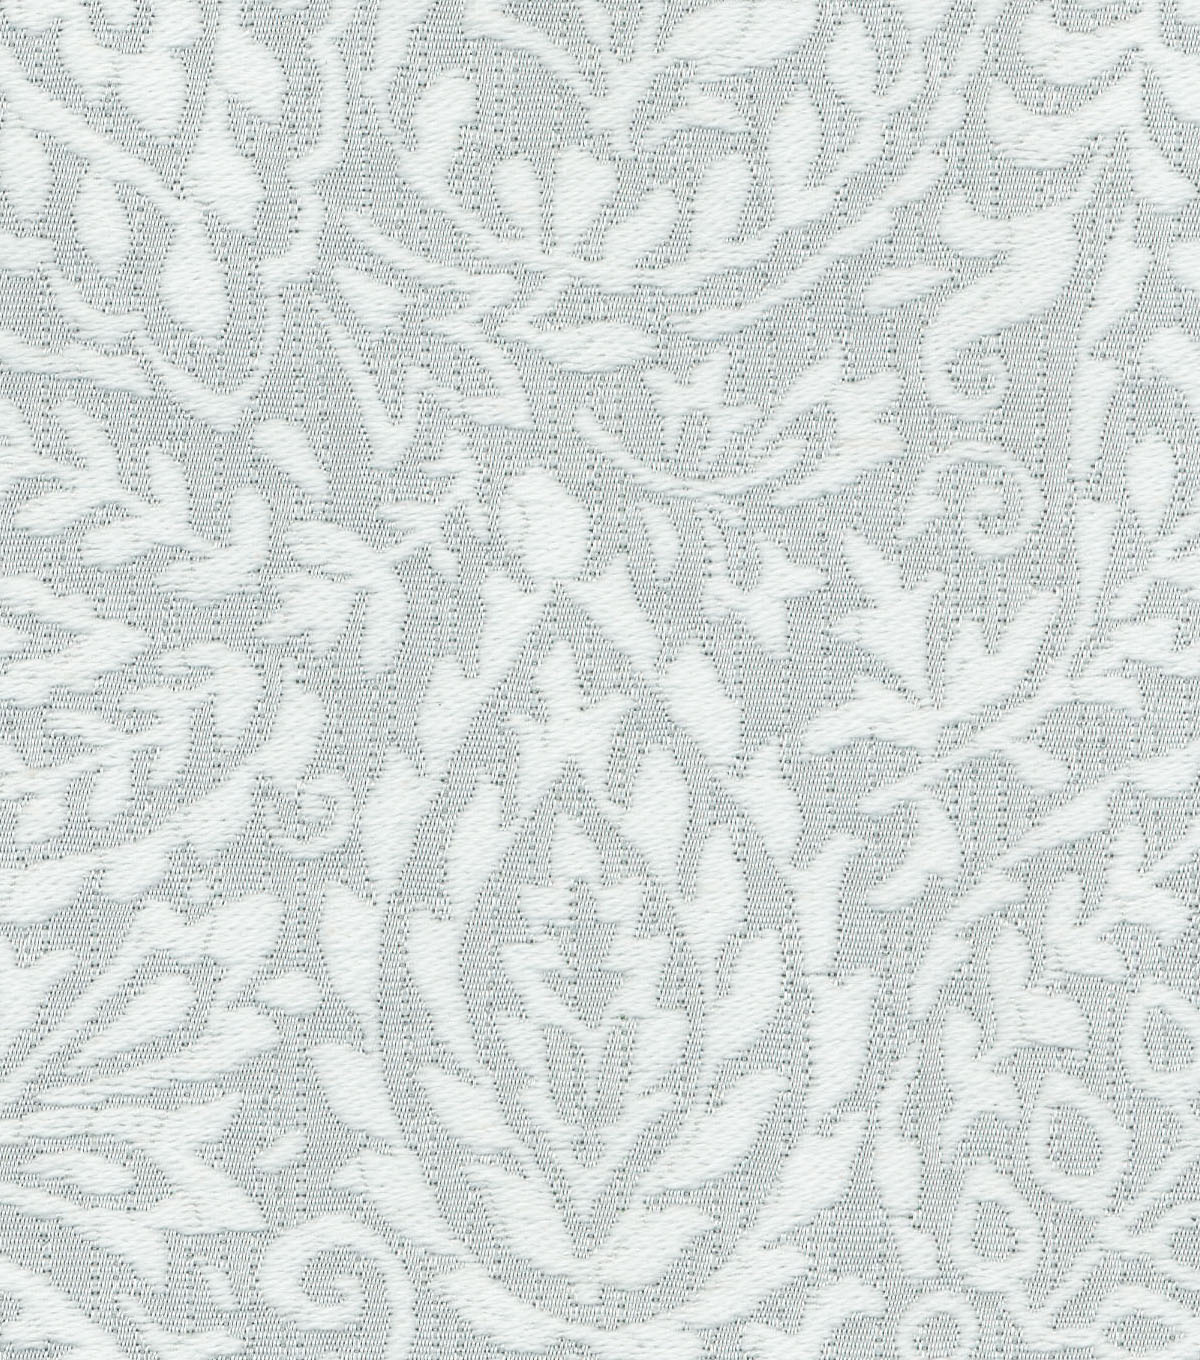 Waverly Upholstery Fabric 13x13\u0022 Swatch-Boutique Find Platinum